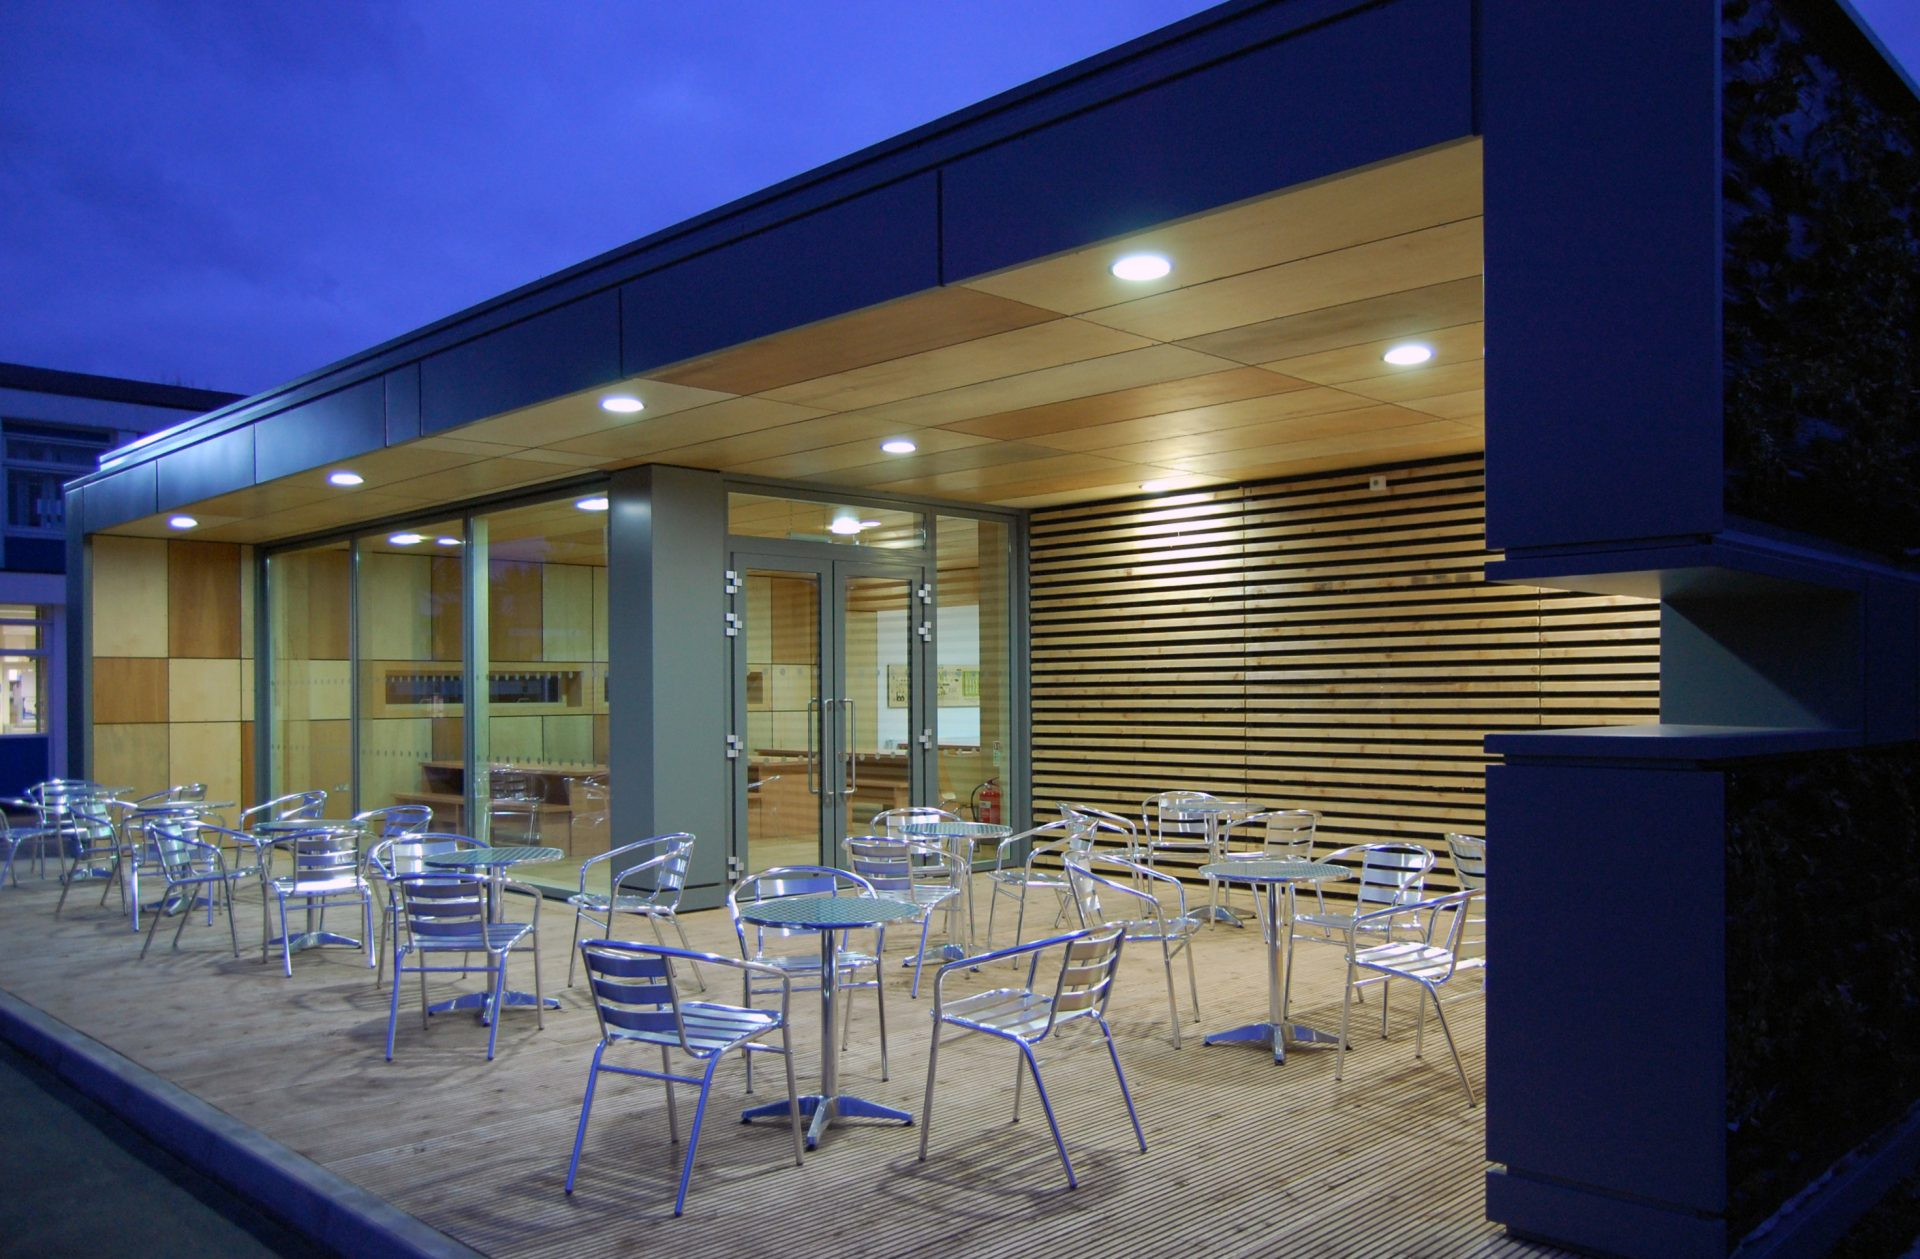 Straw Bale Cafe Night Plywood Cedar Tables Chairs